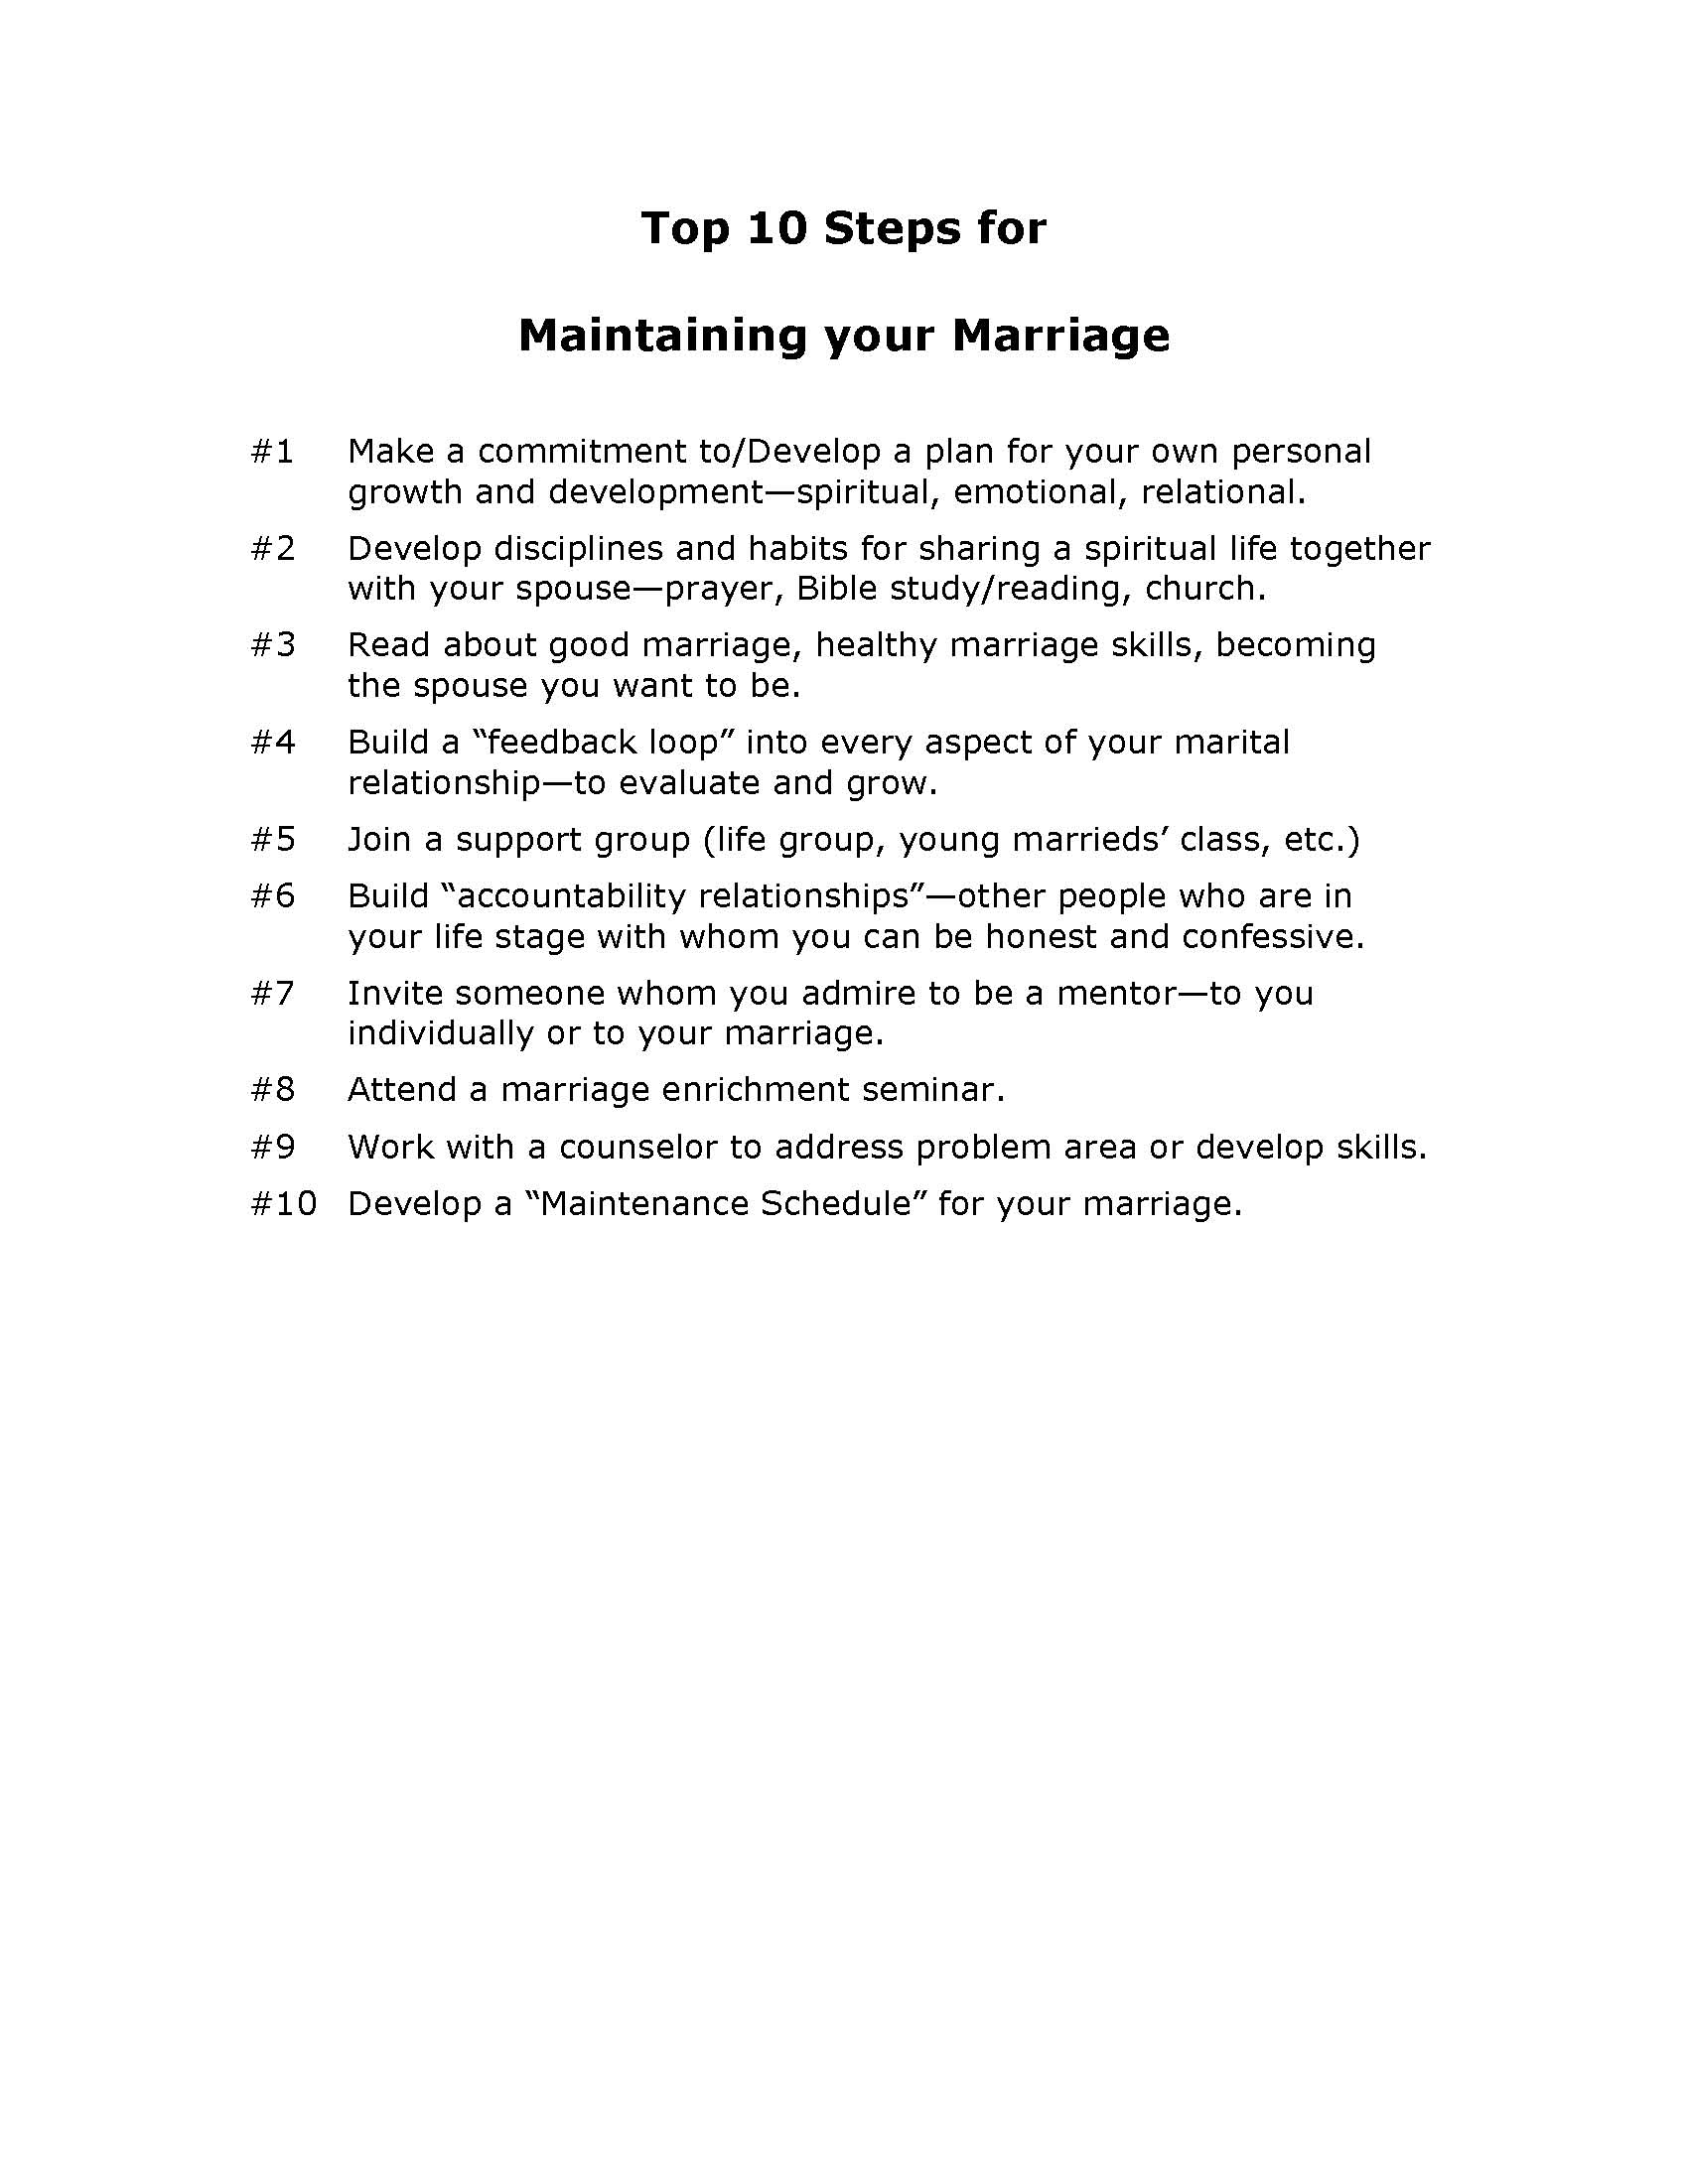 Maintaining your Marriage